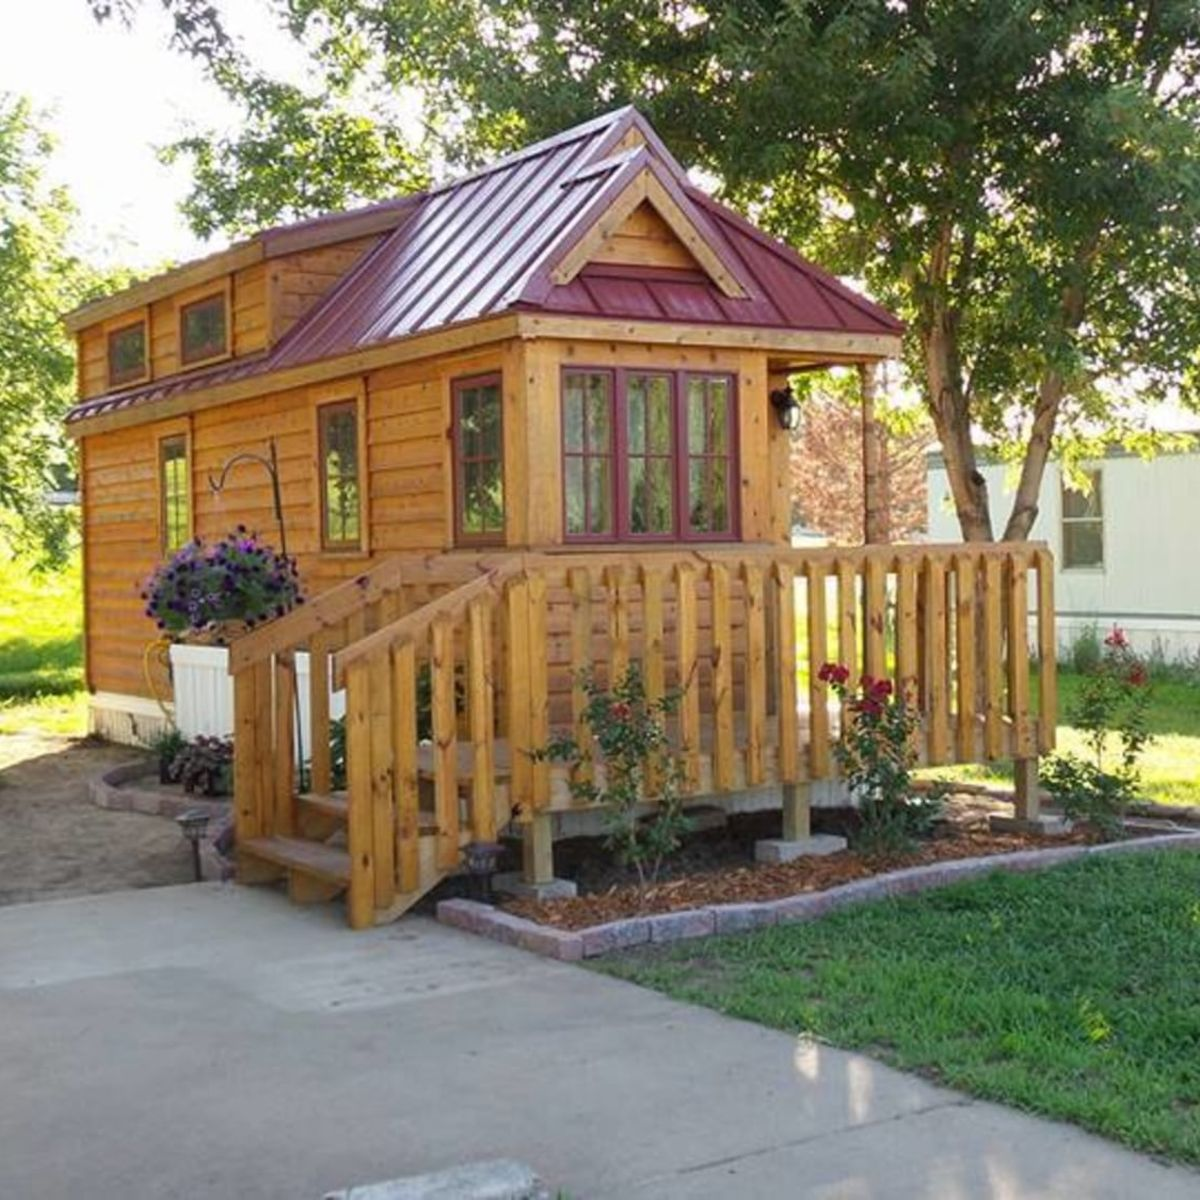 Manhattan Ks Apartments: Tiny House For Sale In Manhattan, Kansas